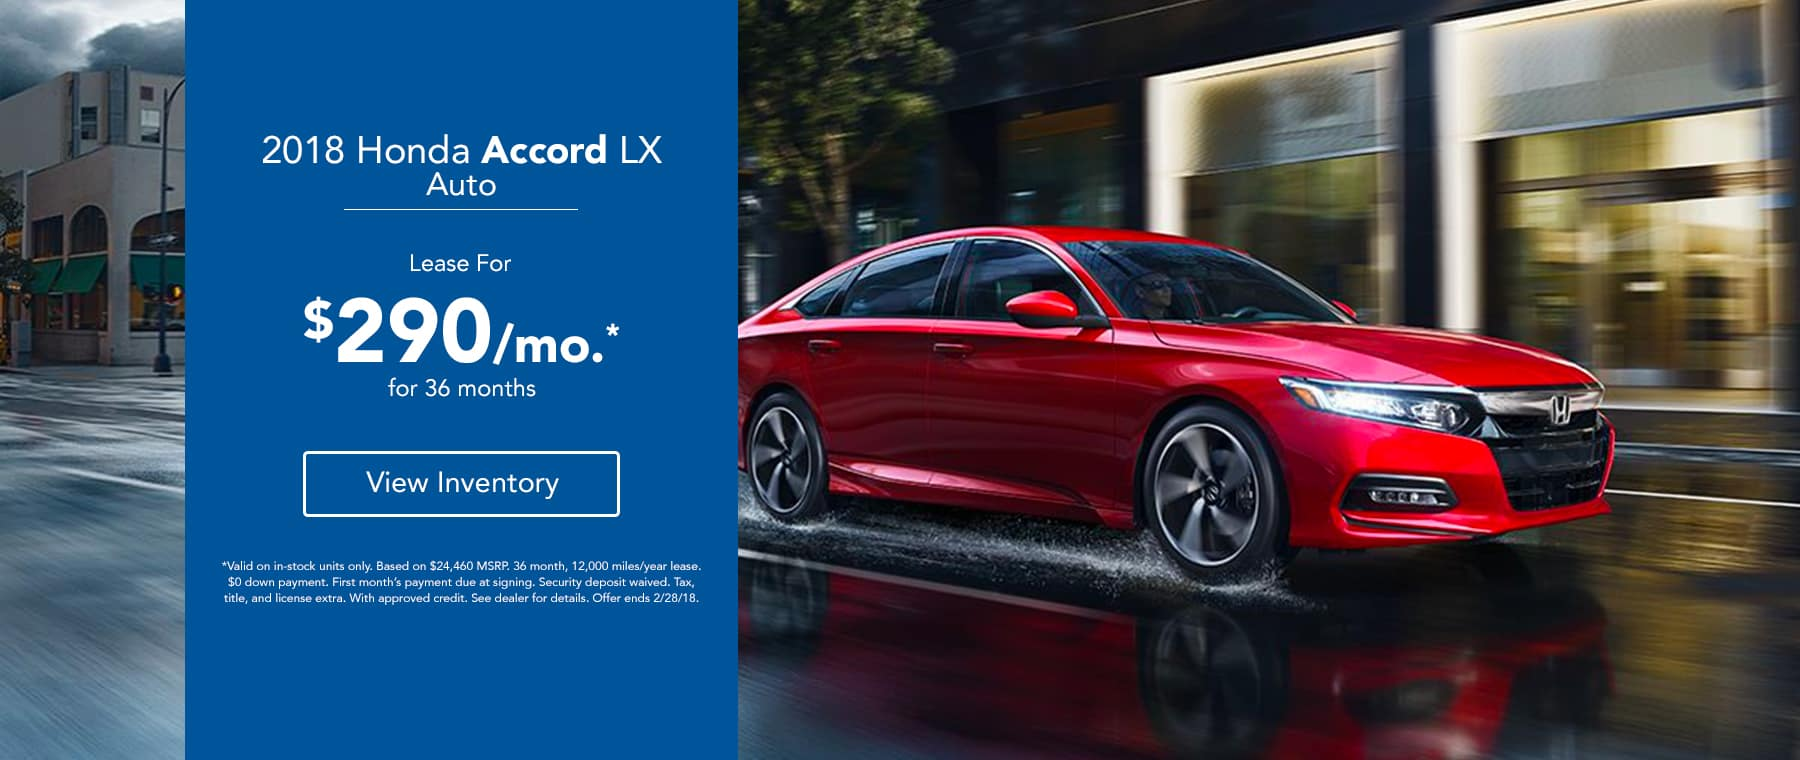 Legends Honda Accord - Lease for $290/mo